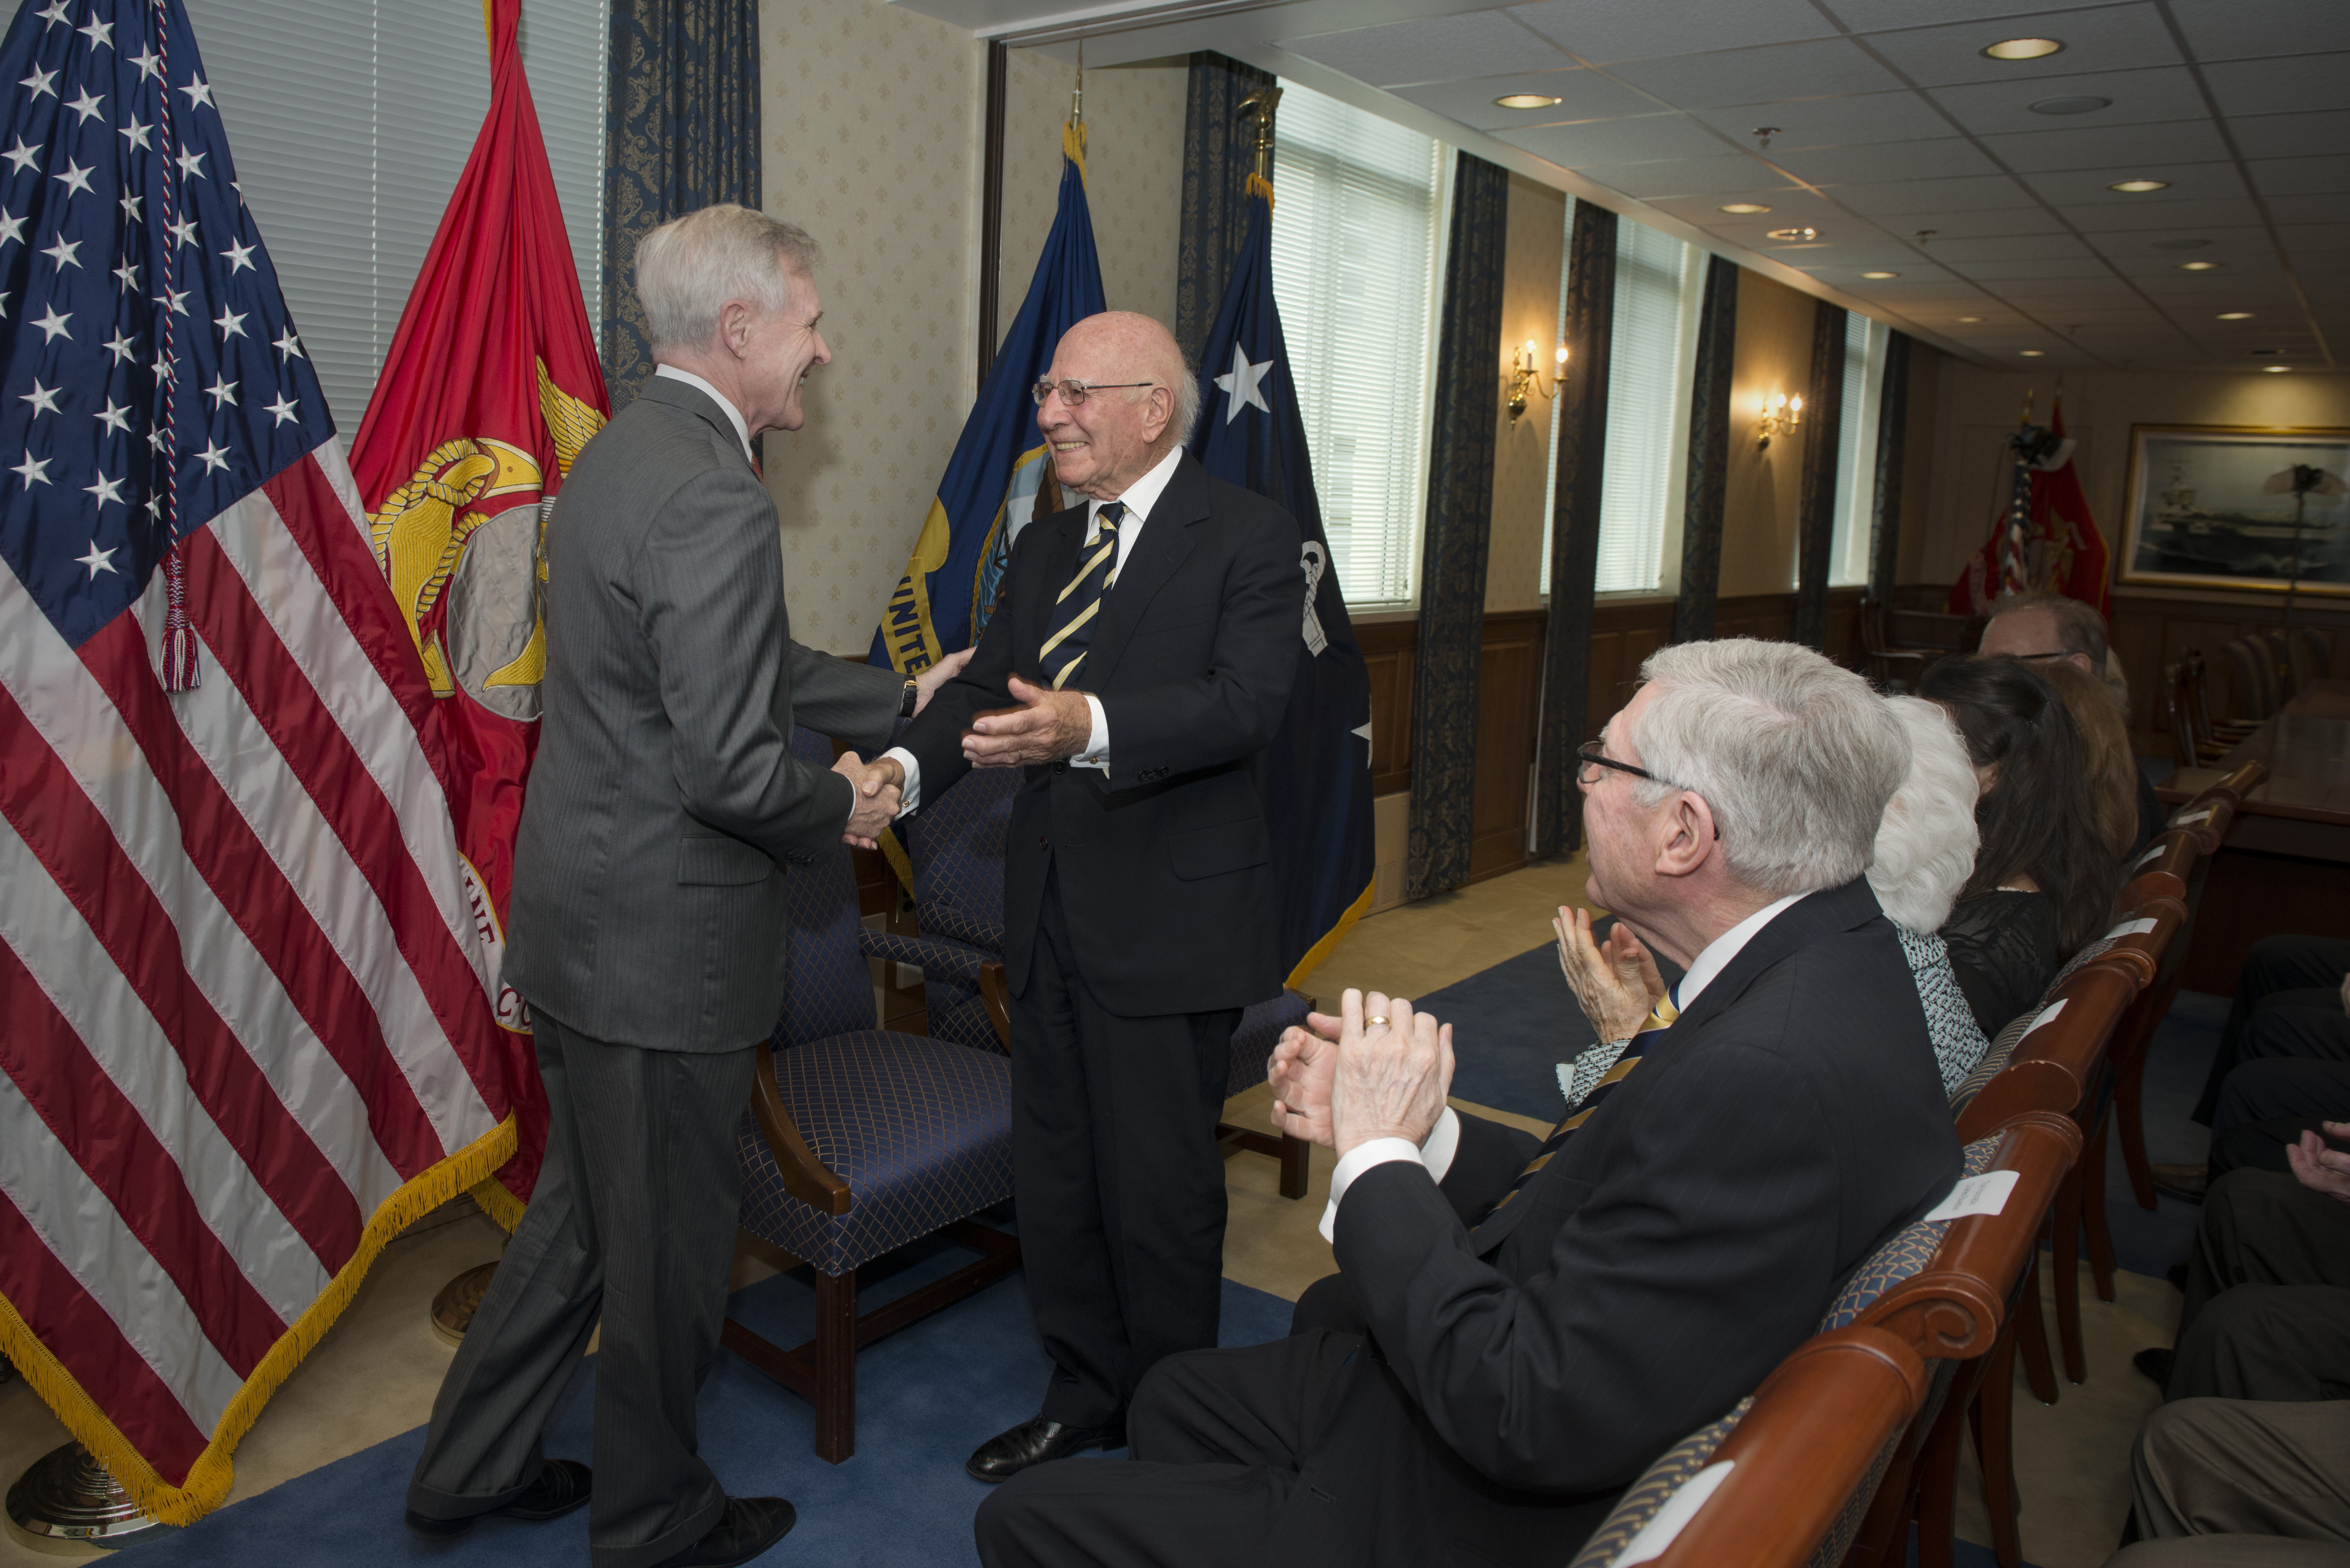 Paul Ignatius, right, is congratulated by Secretary of the Navy Ray Mabus during the Washington, D.C., ceremony celebrating the naming of the future USS Paul Ignatius. (Photo/Arif Patani)